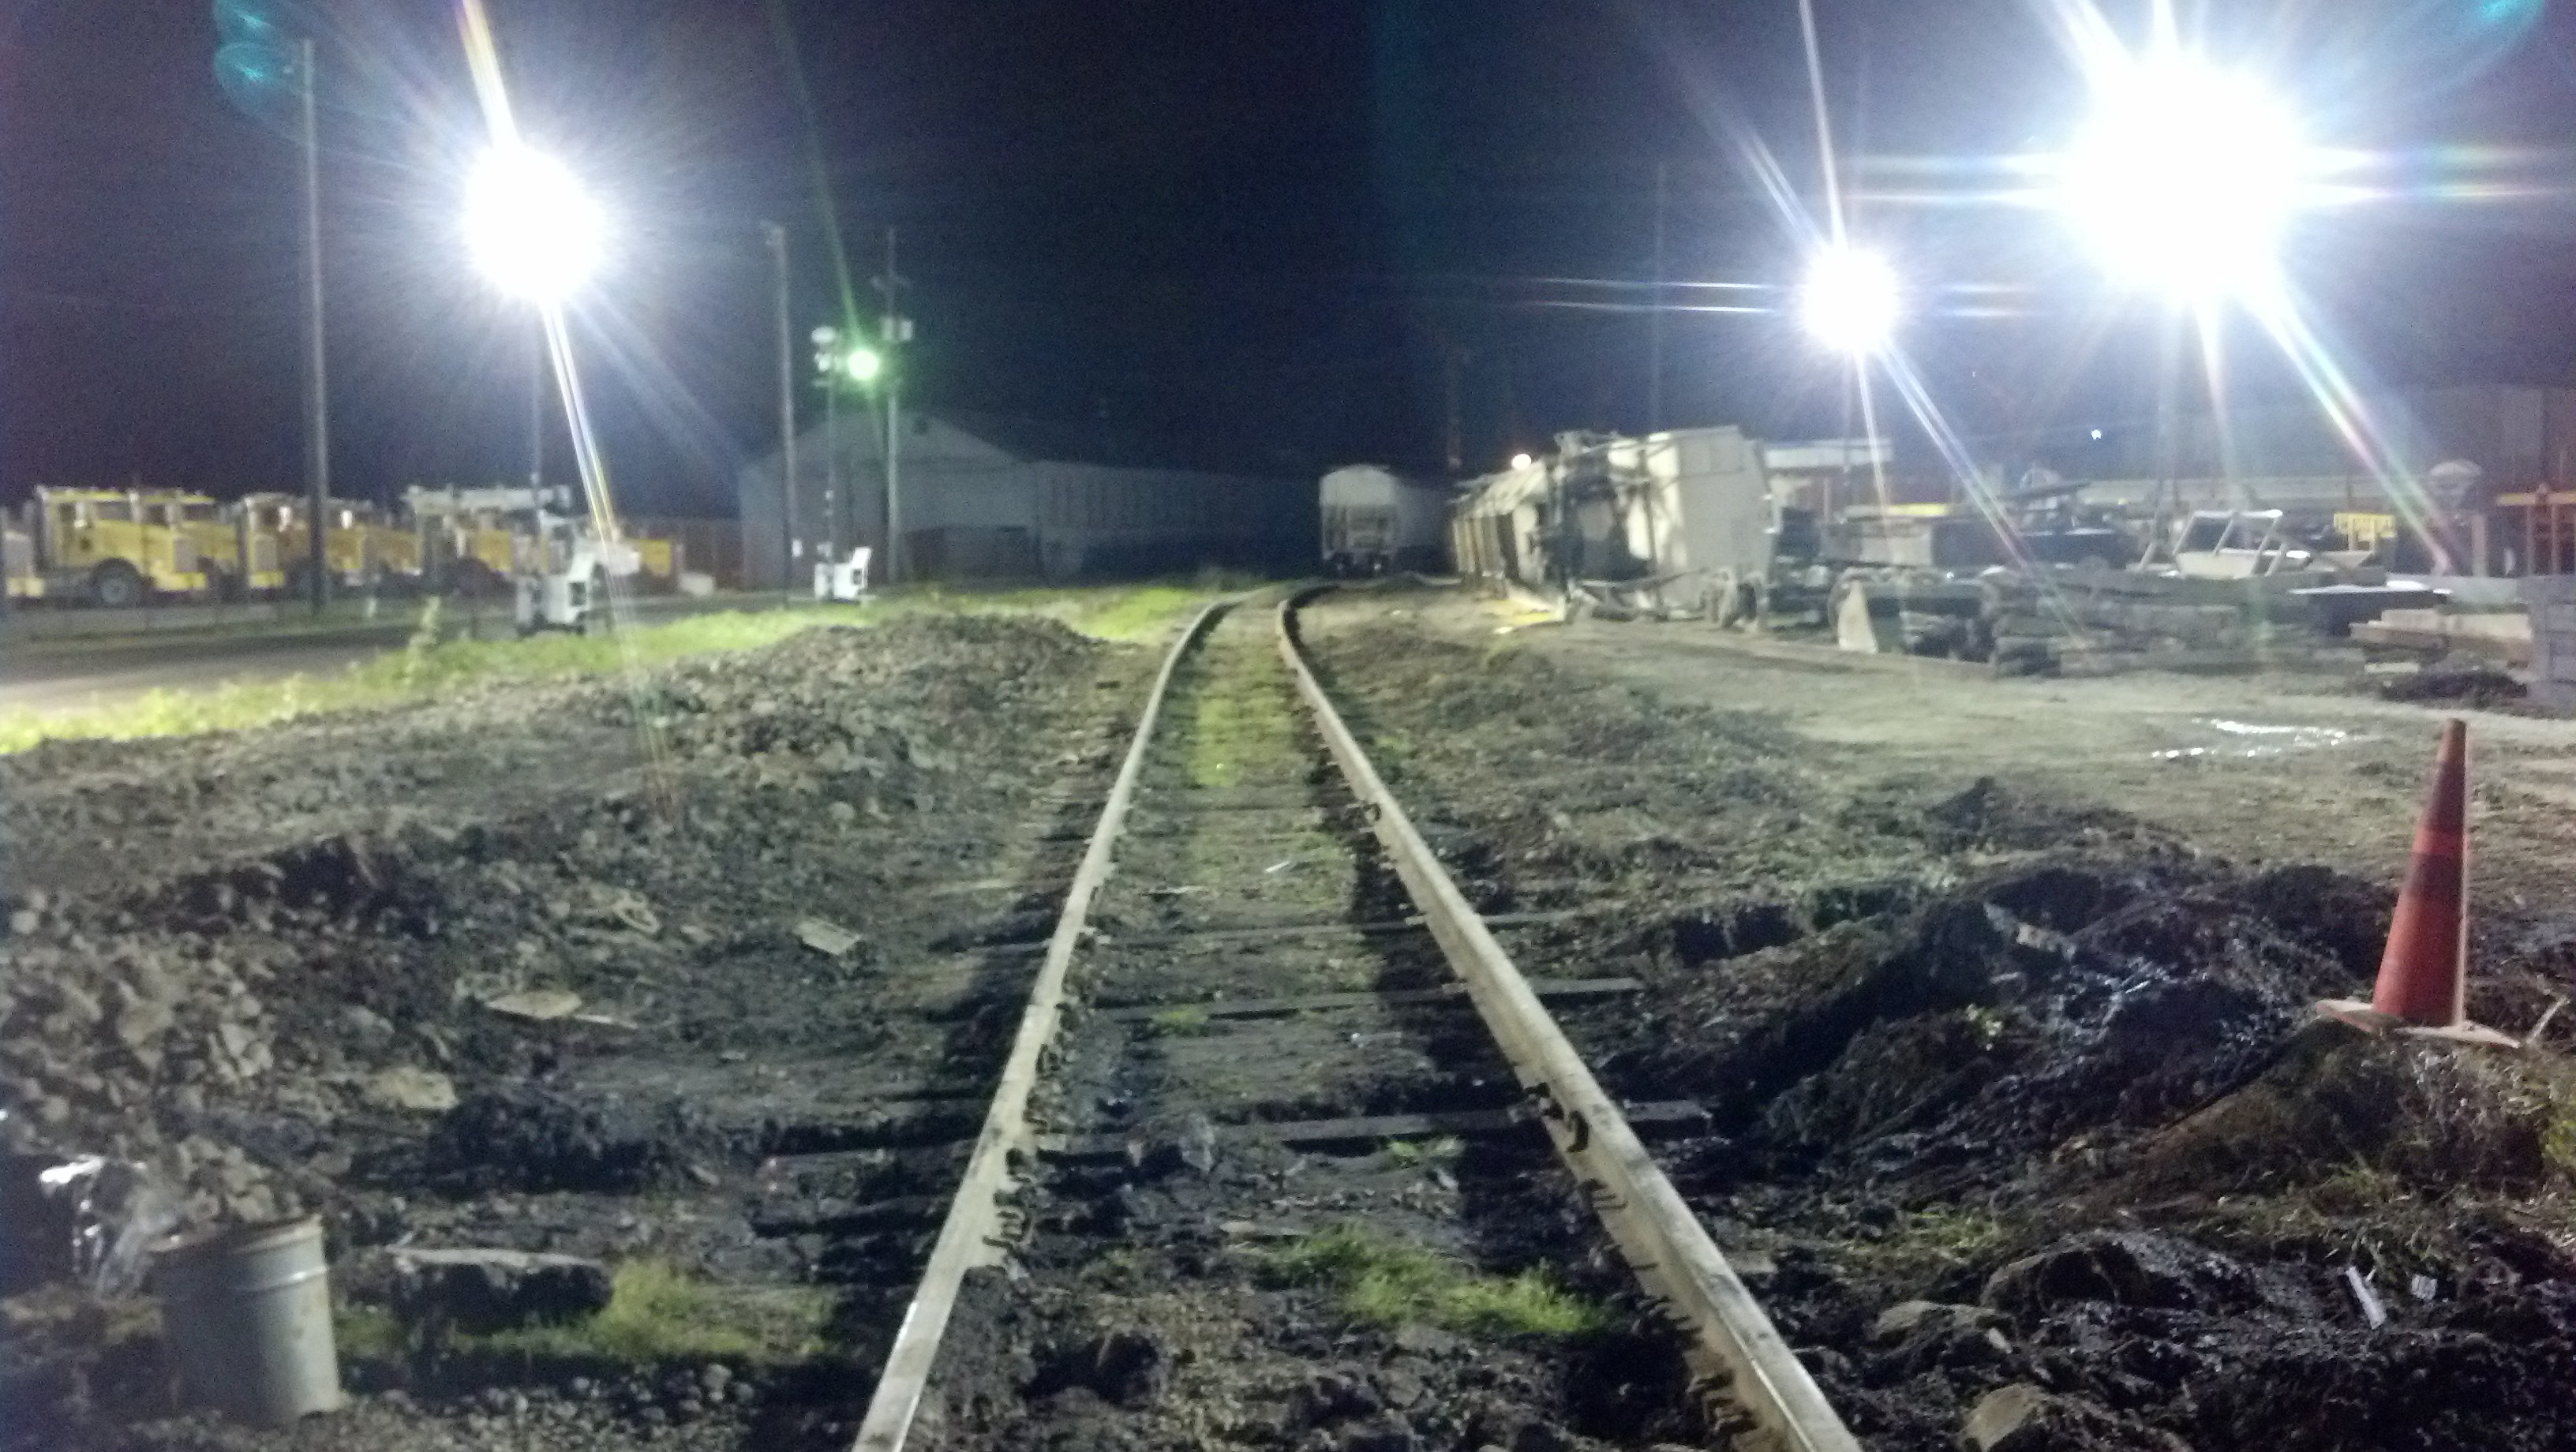 Tracks repaired at the scene of Aberdeen train derailment